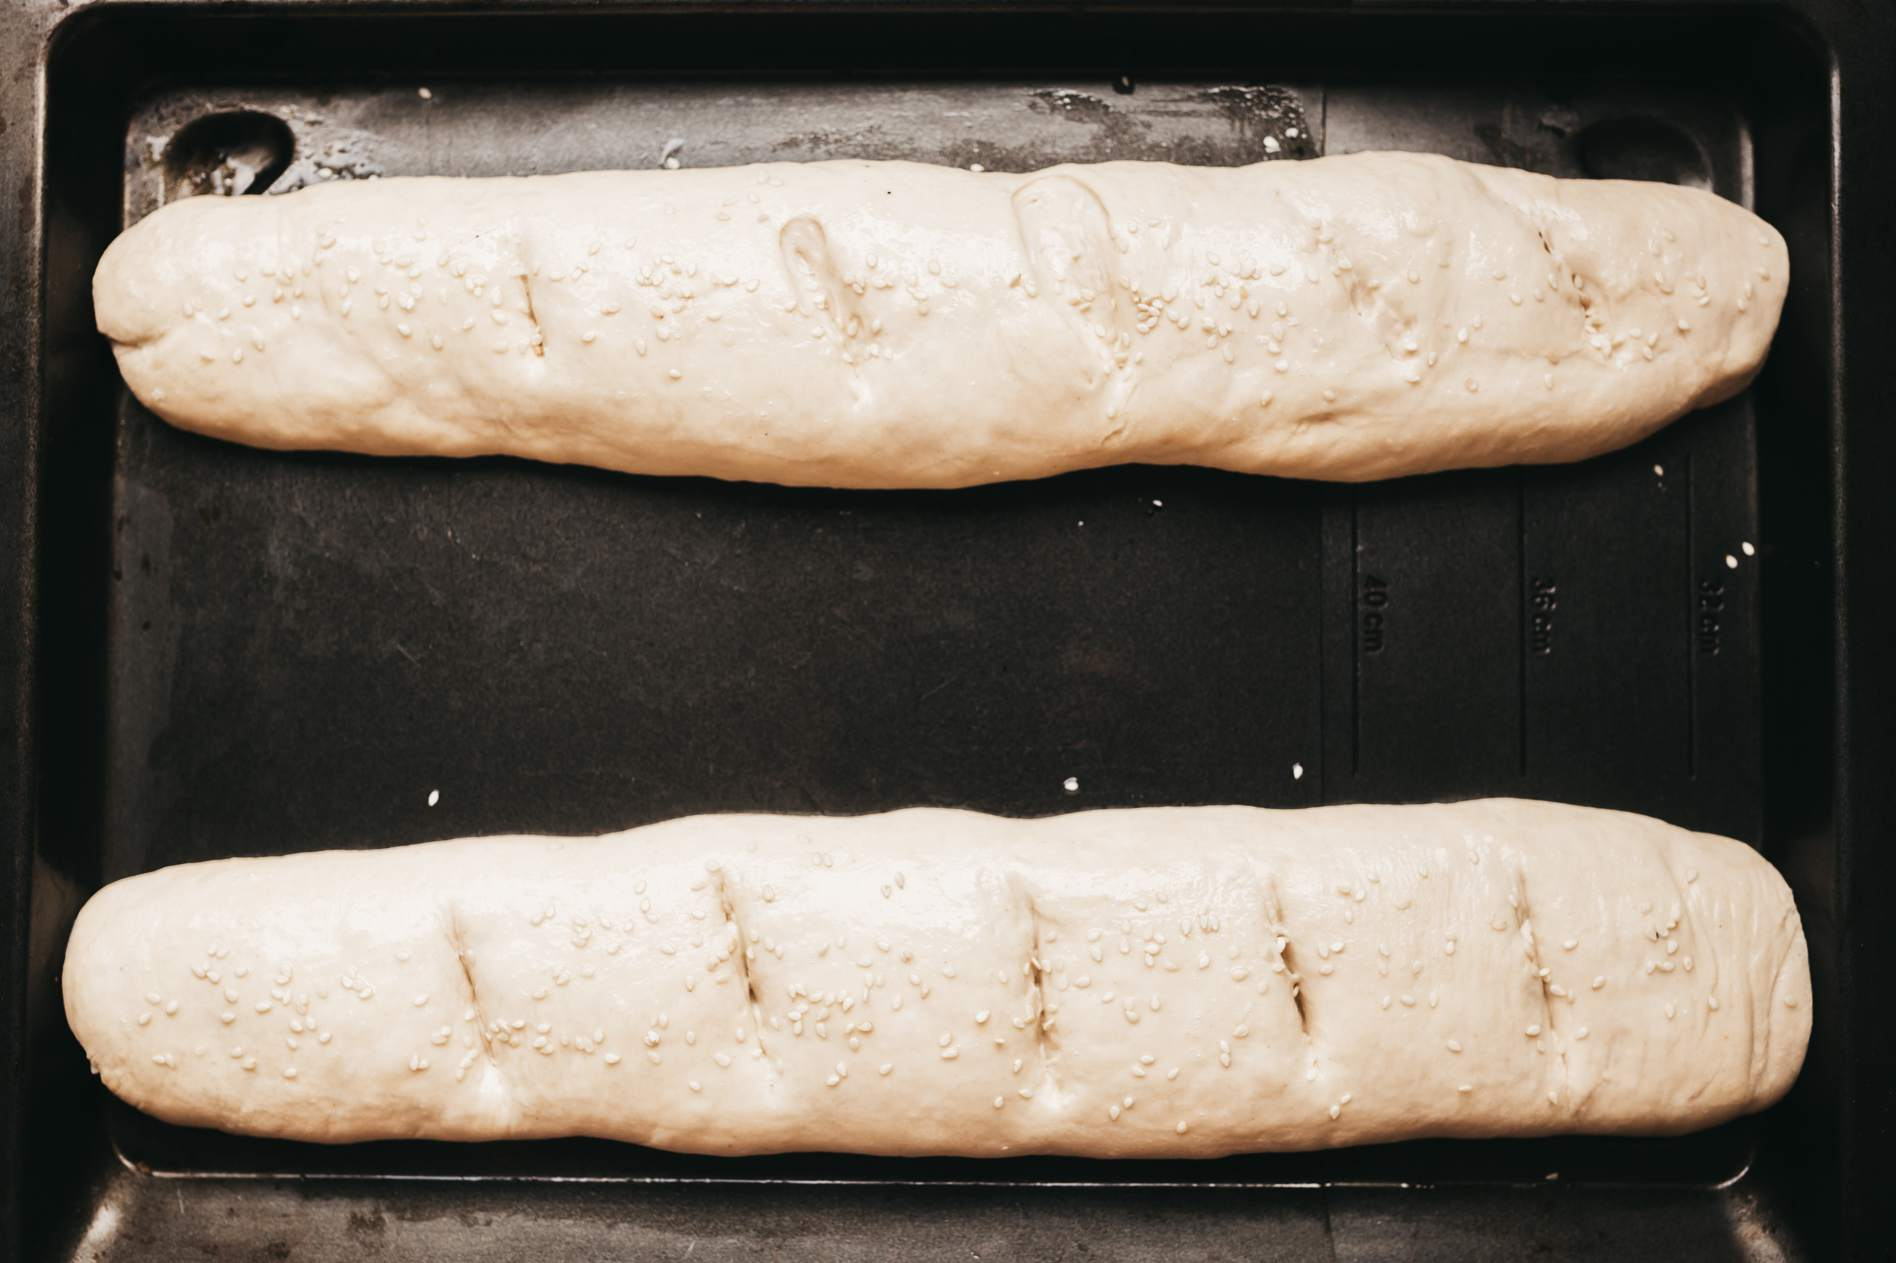 Loaves brushed with egg white and sesame seeds added